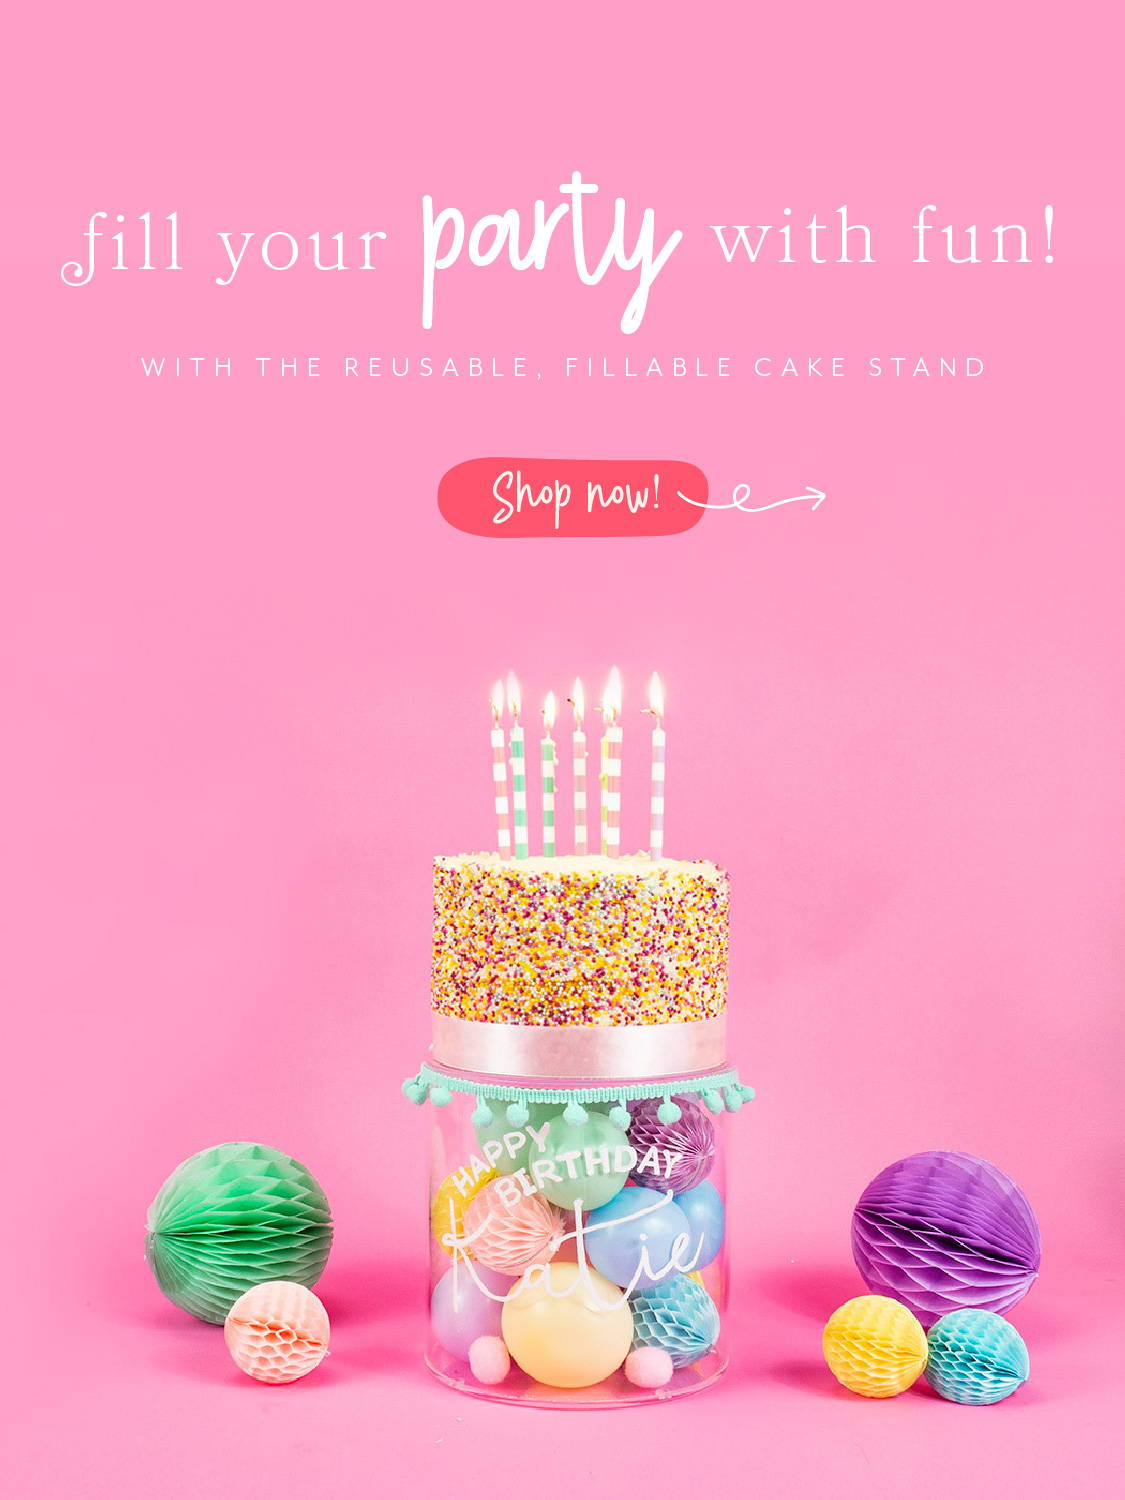 Hello Party Modern Stylish & Luxury Party Supplies Unique Fillable Cake Stand